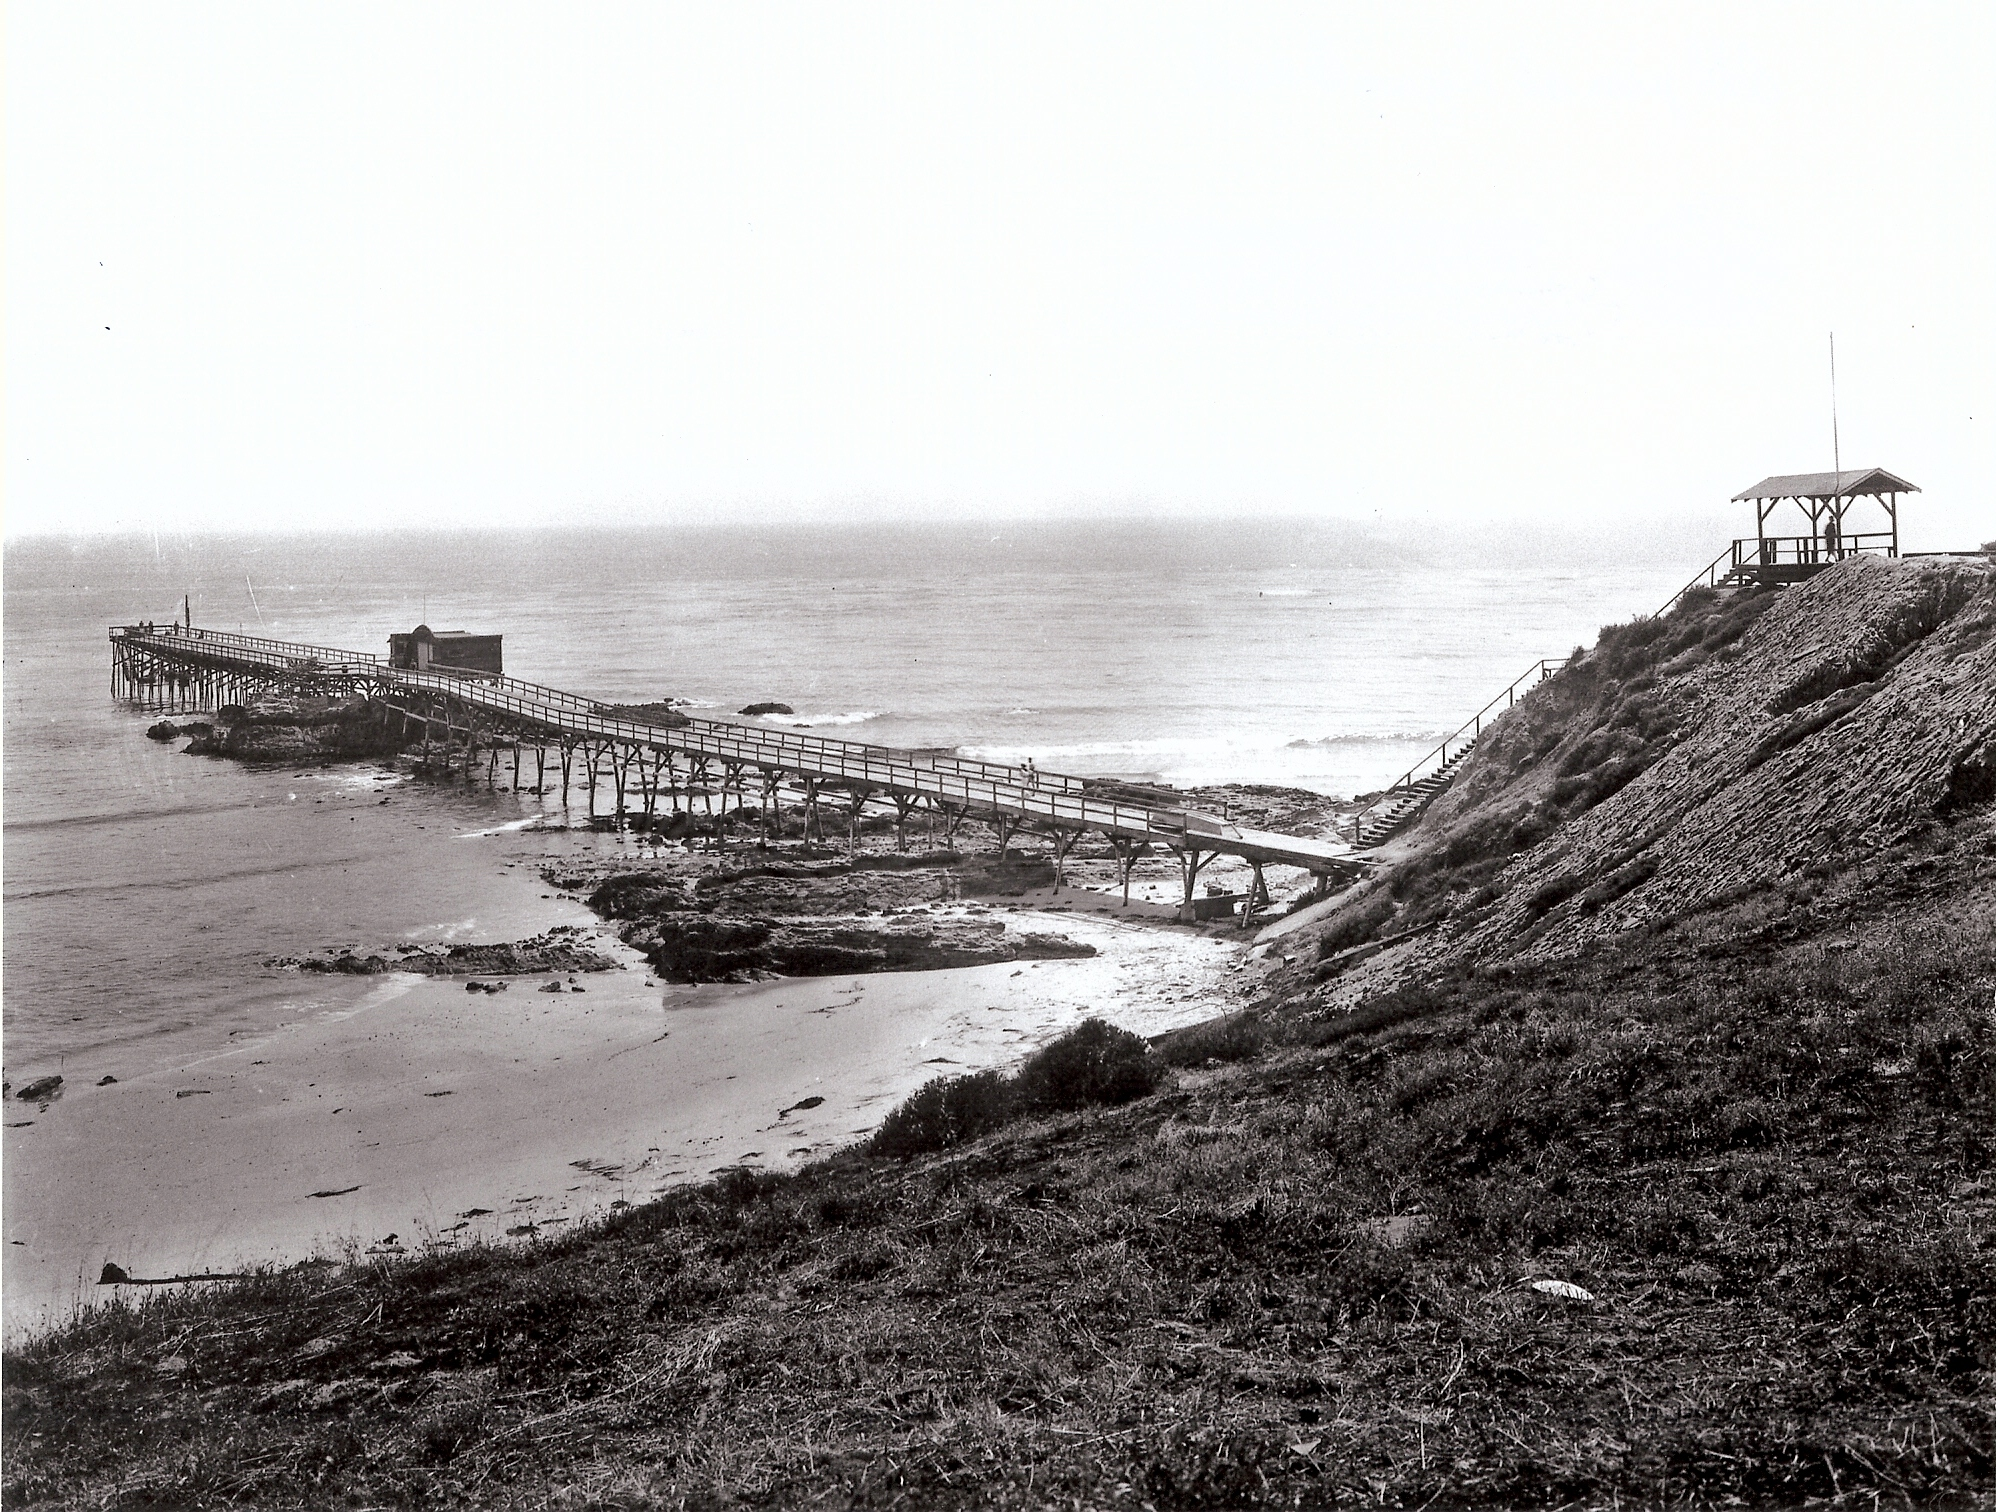 Main Beach Pier at Heisler Point  - Destroyed in 1939 Storm - 1st Am Title Collection.jpg